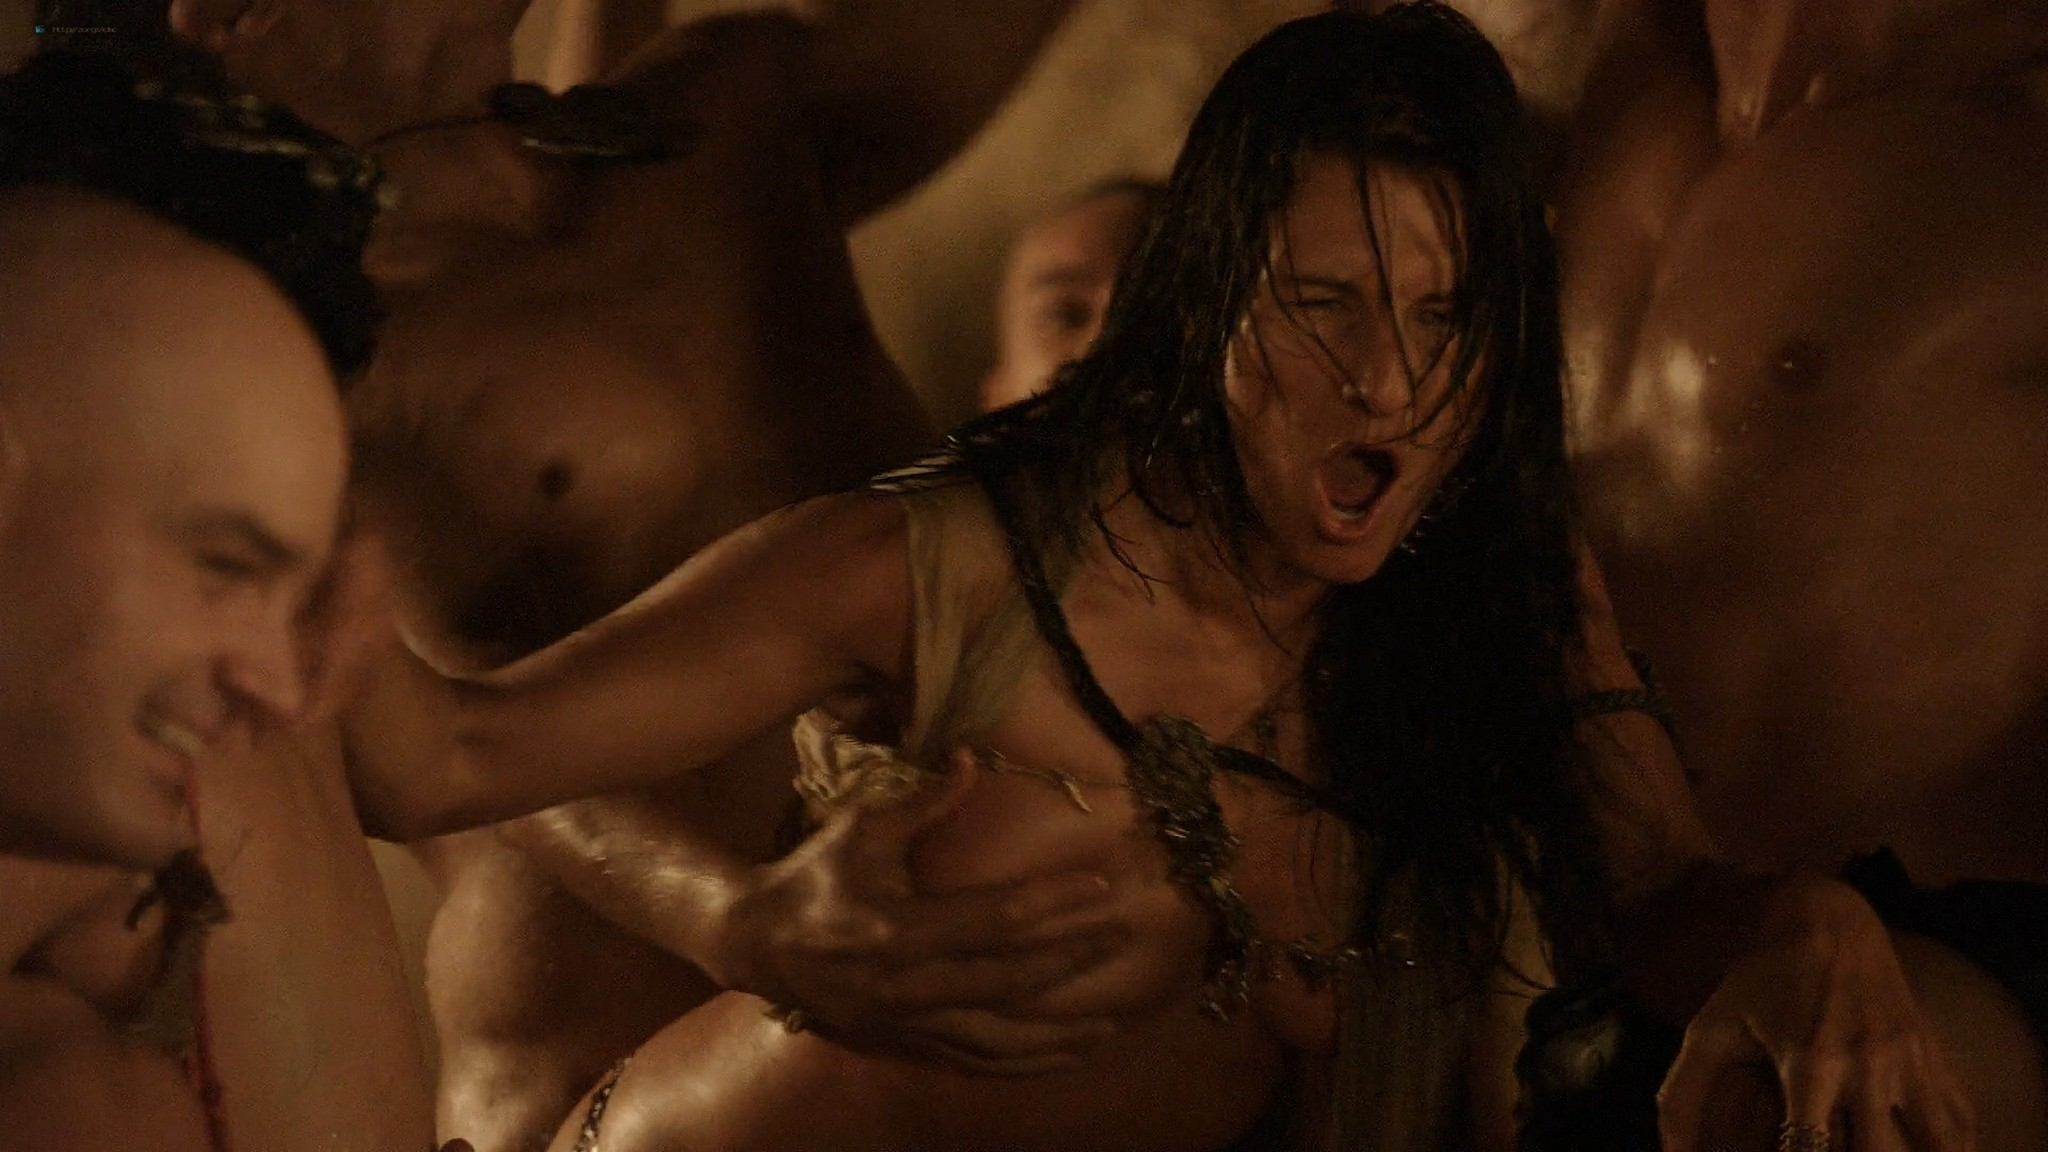 Lucy Lawless nude Lesley-Ann Brandt and other nude sex too - Spartacus (2010) Delicate Things s1e6 HD 1080p BluRay (3)